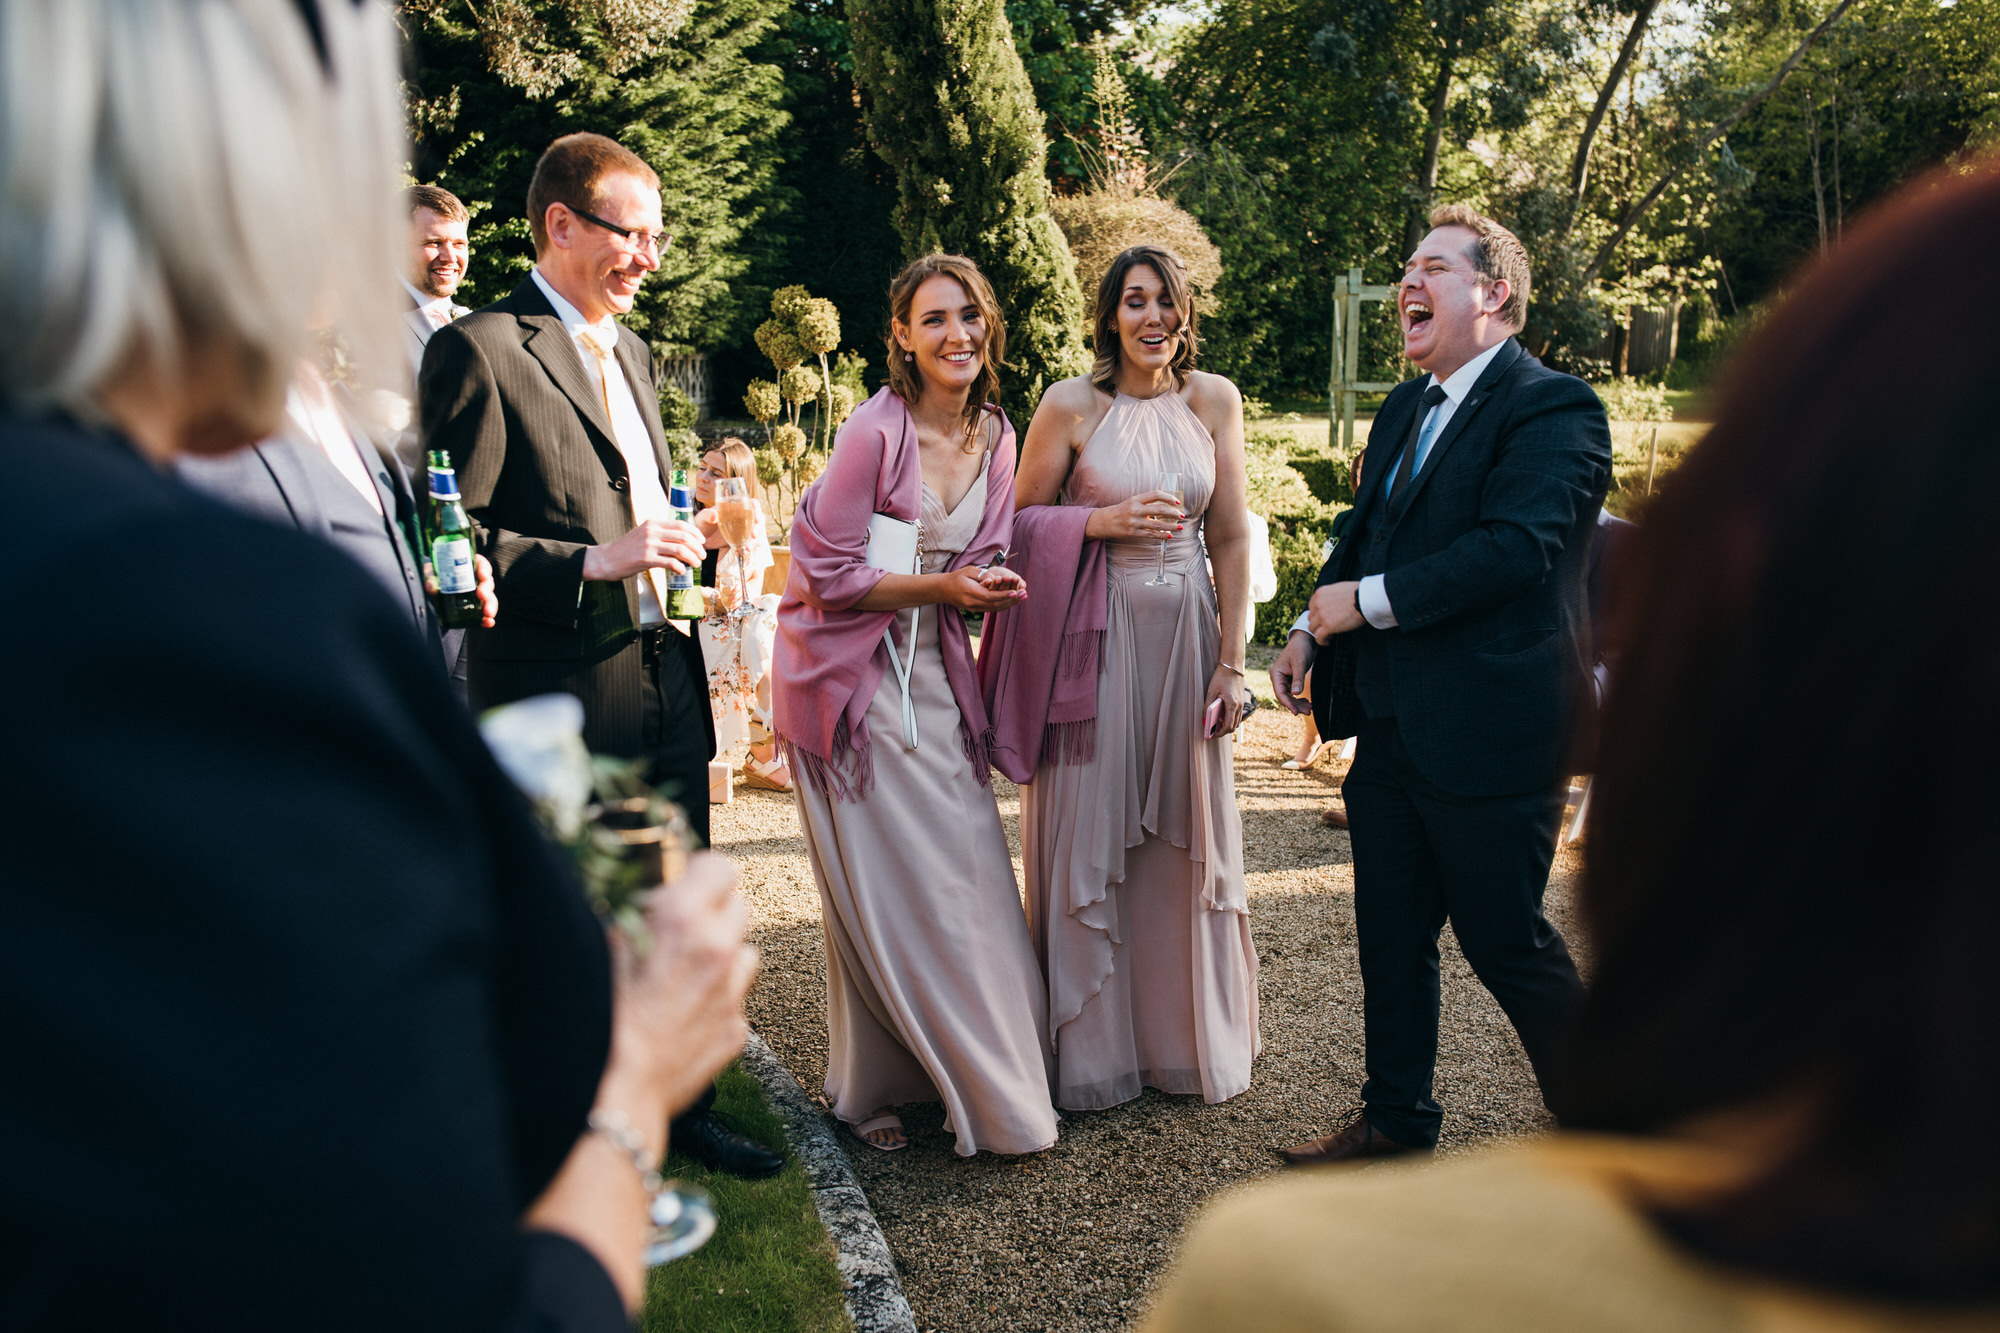 Manor by the lake wedding photographer 65